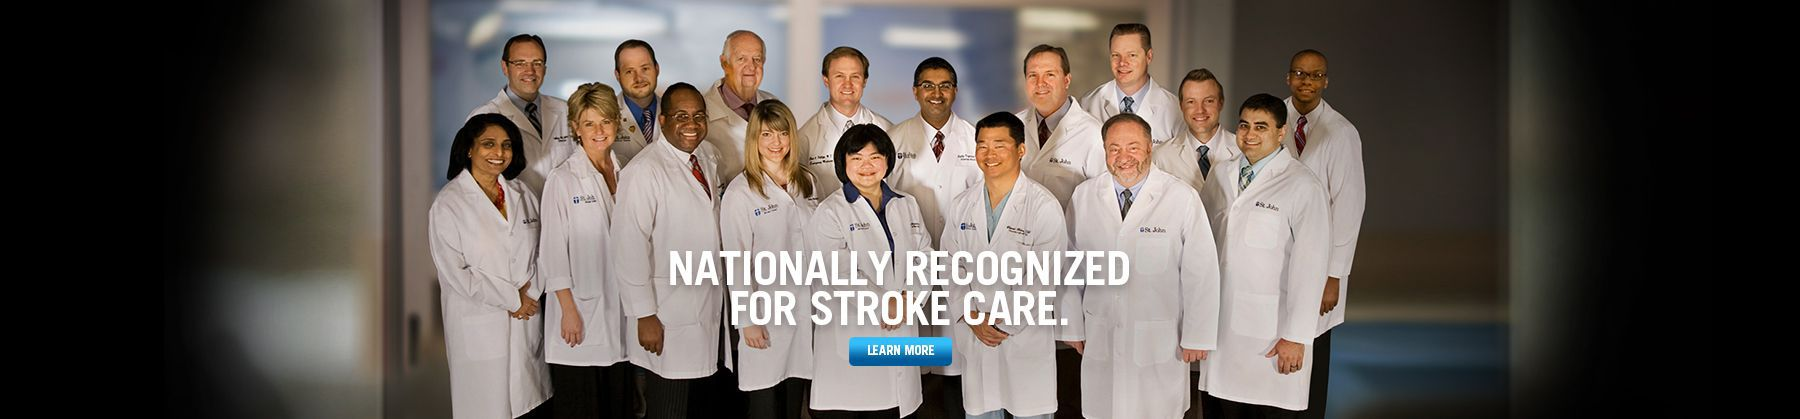 Nationally Recognized for Stroke Care